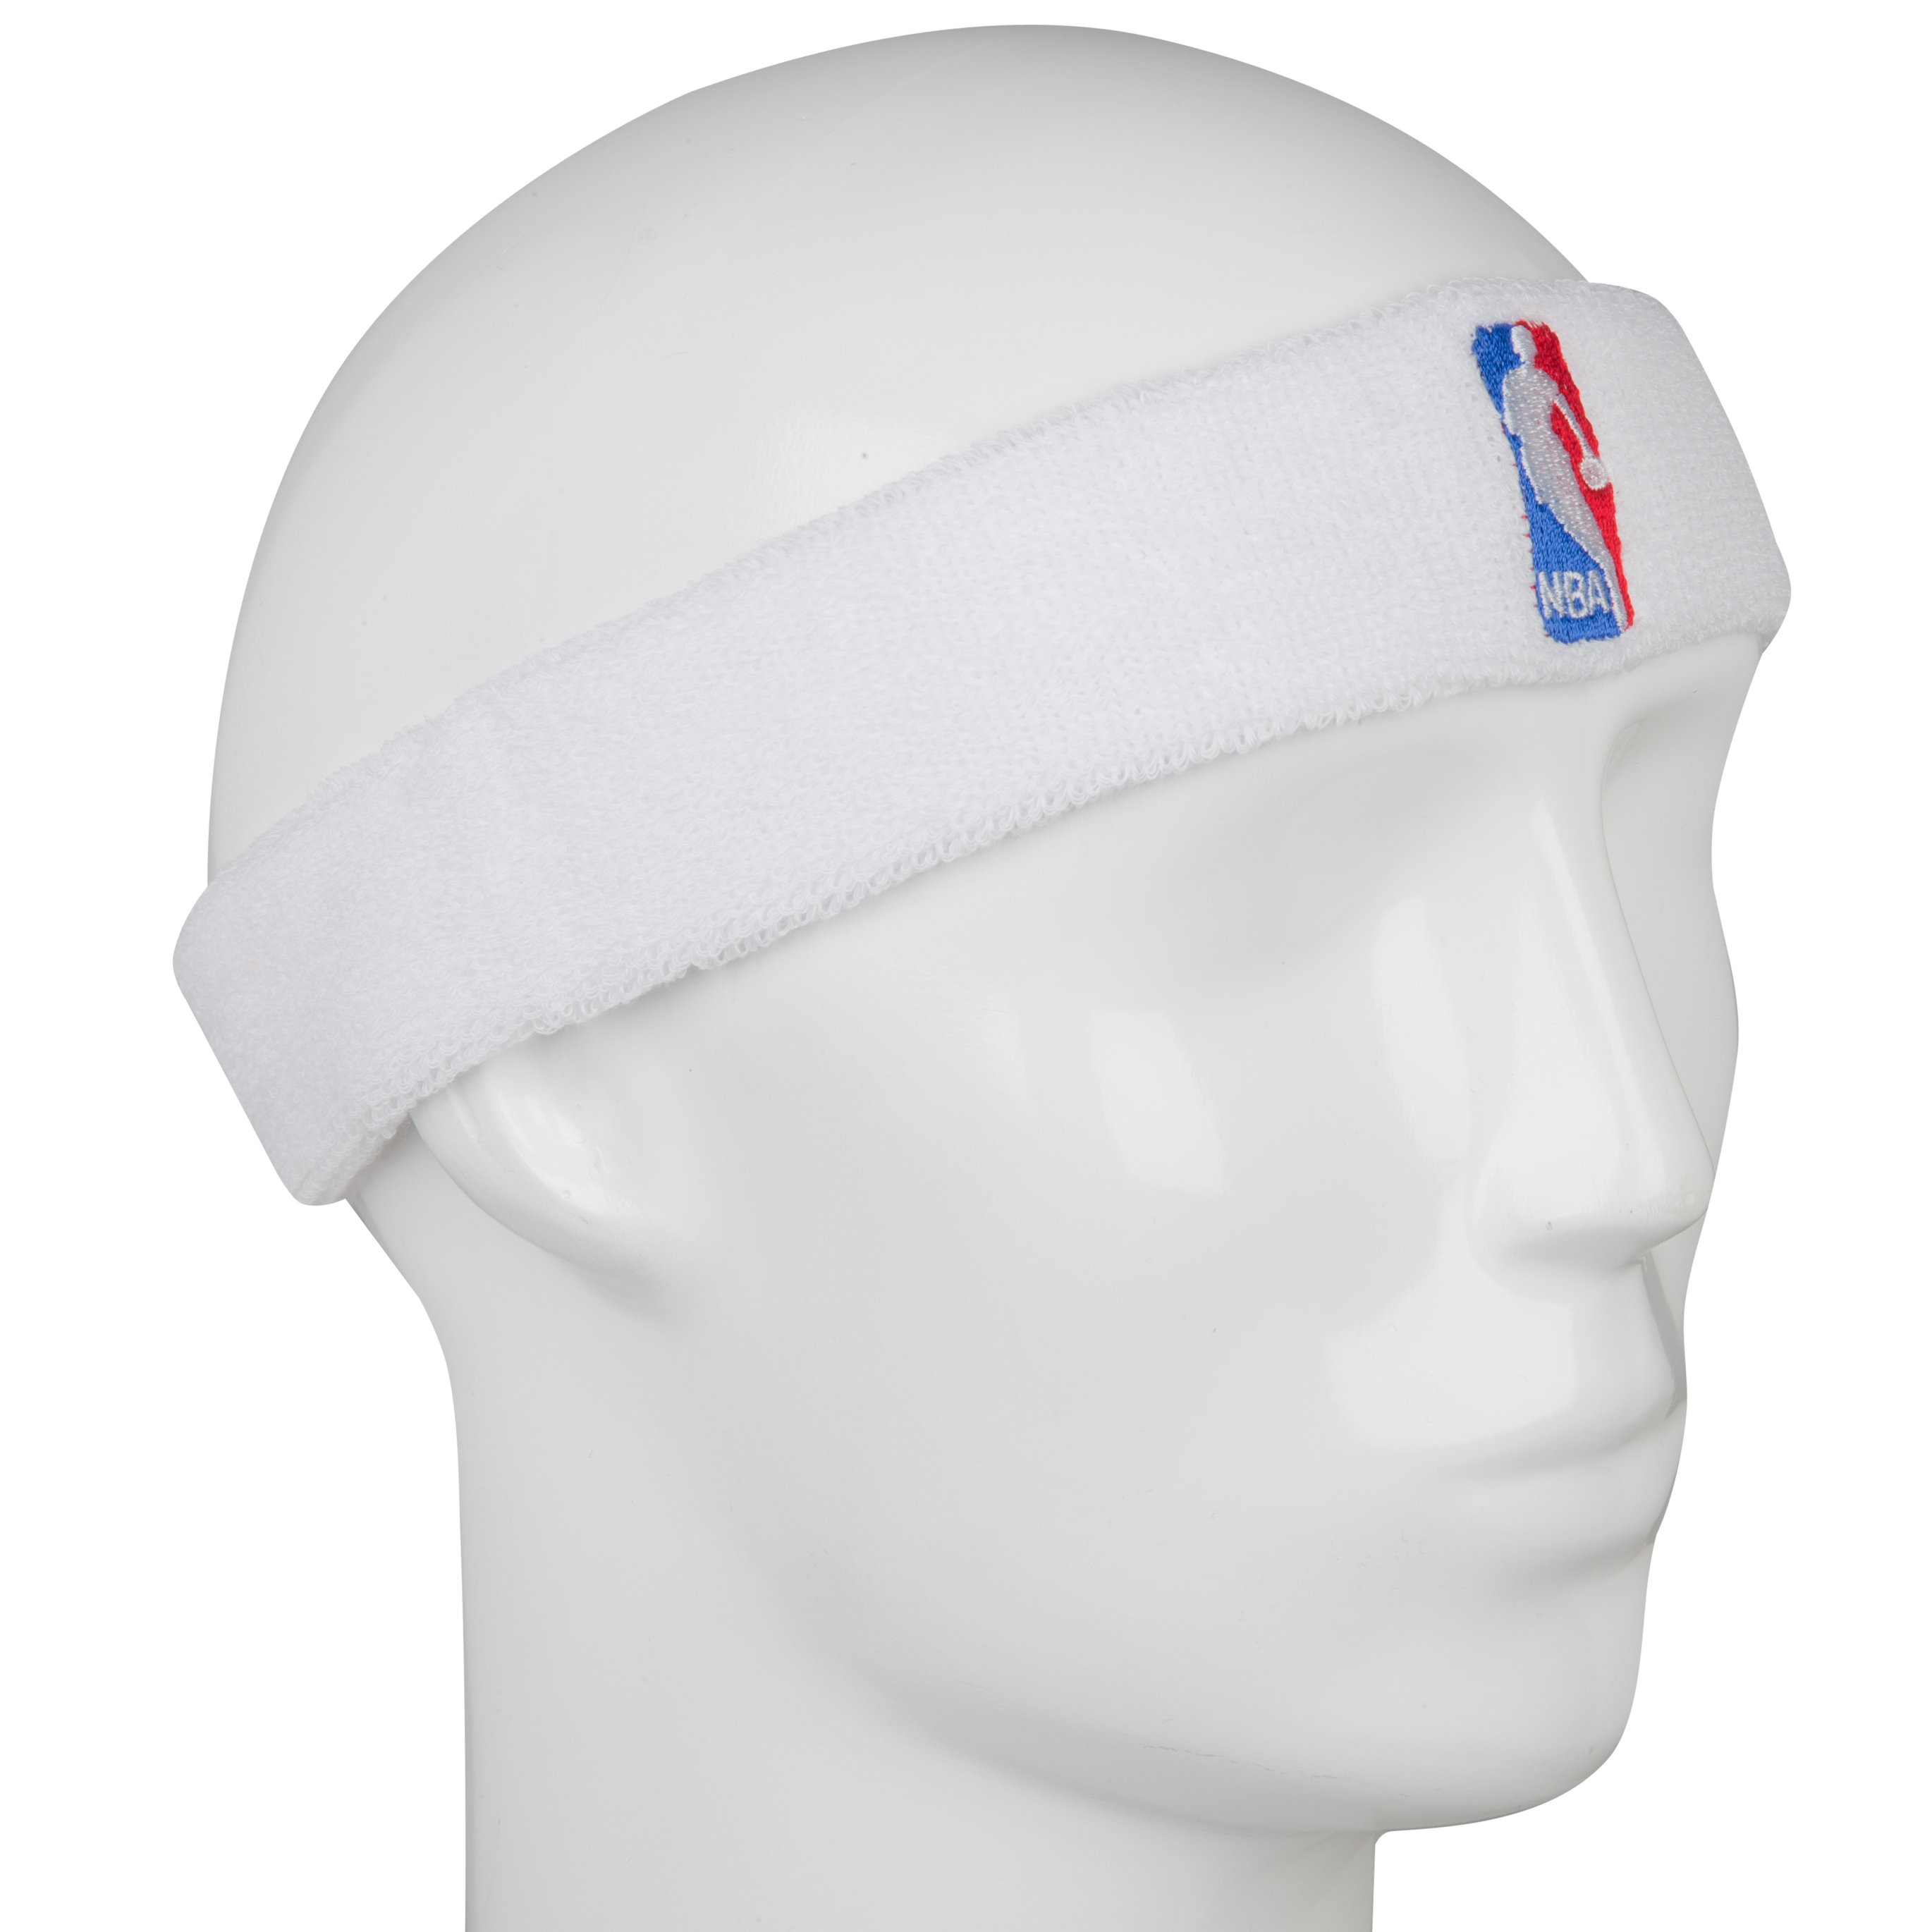 NBA Logoman Headband - White